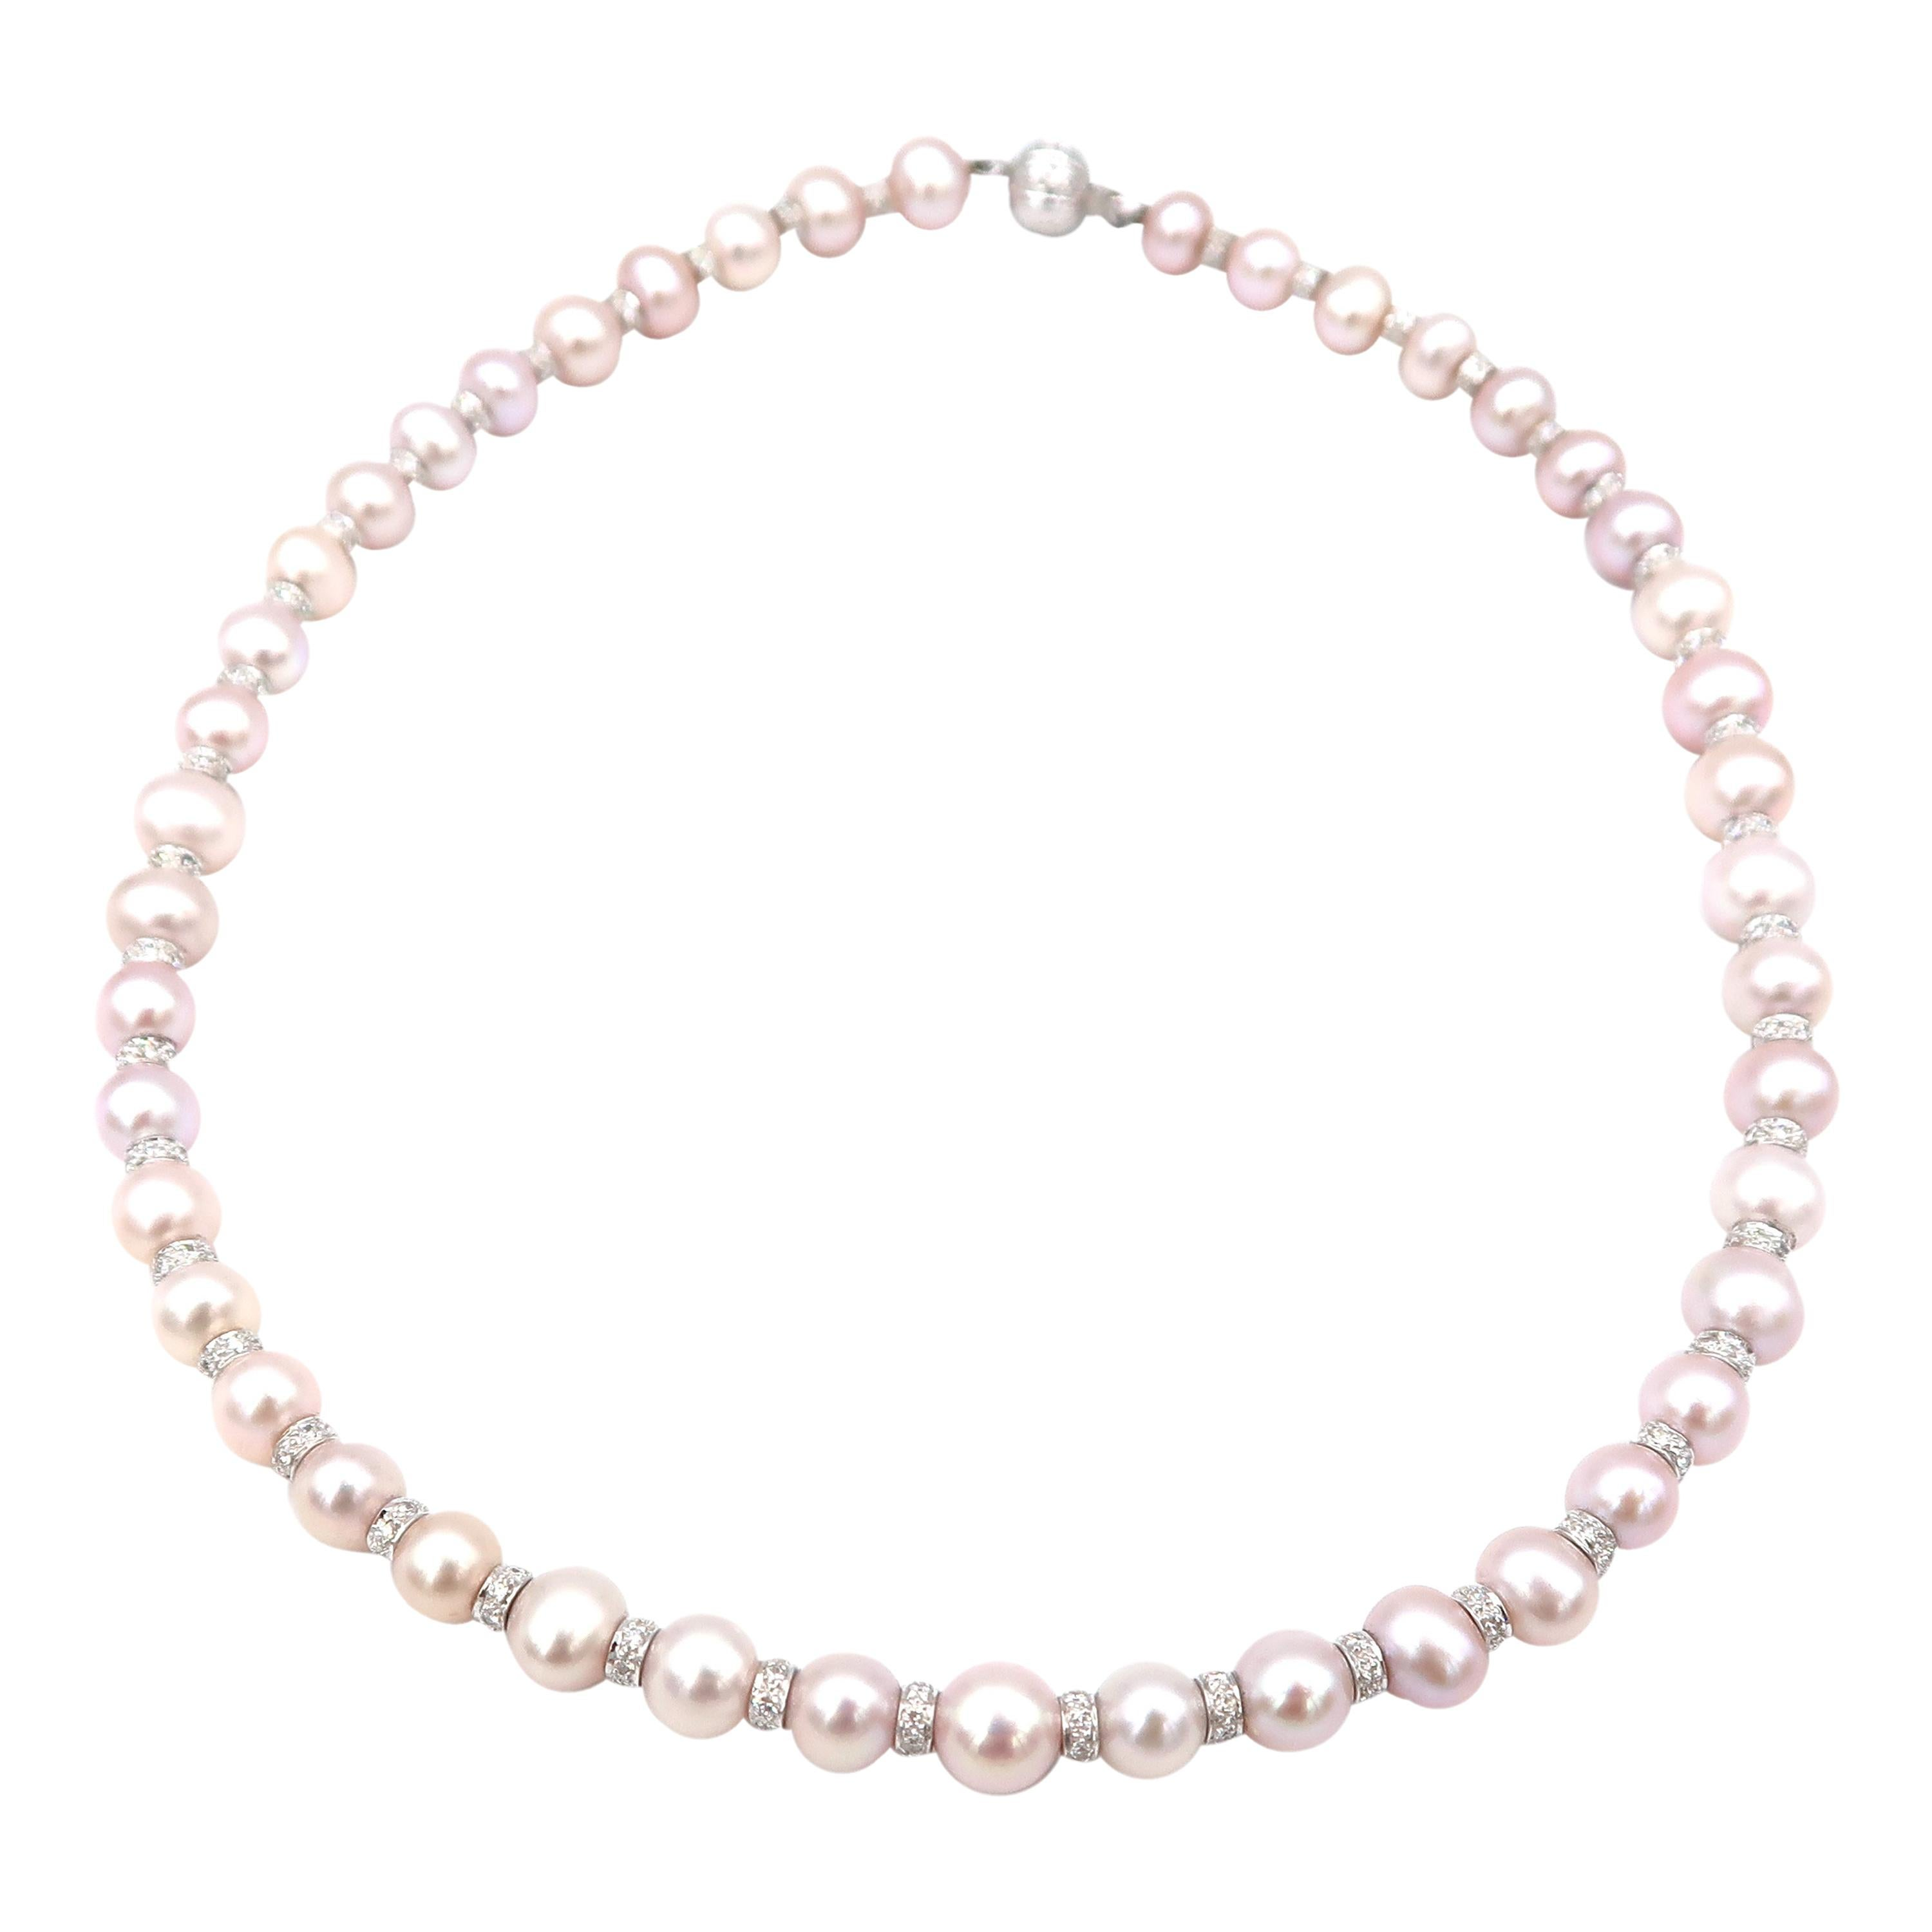 Akoya Pink Pearl Single Strand Necklace with Diamond Spacers in Between